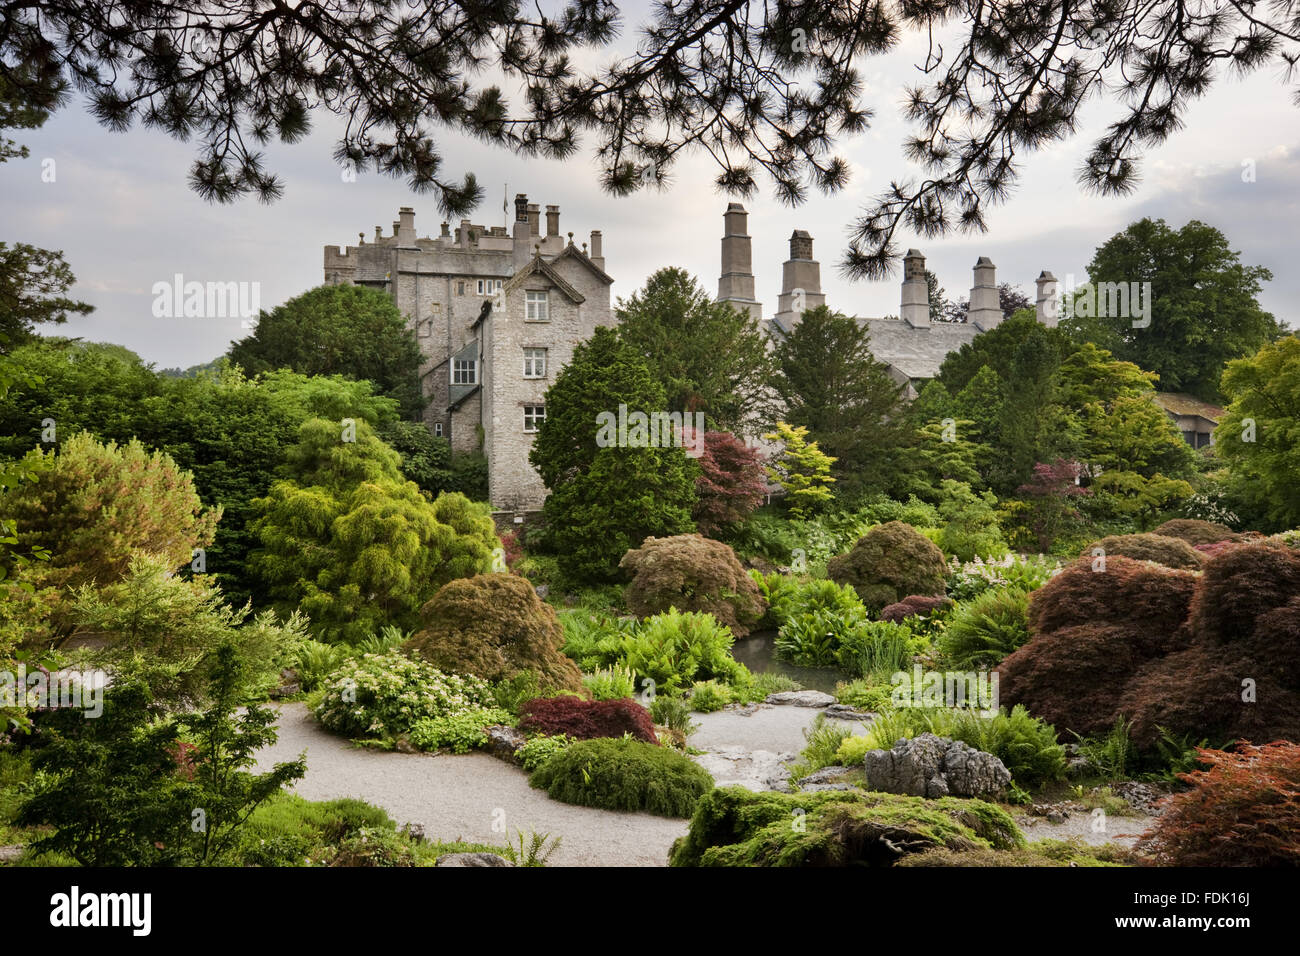 The Rock Garden in June at Sizergh Castle, near Kendal, Cumbria. The Rock garden covers almost an acre and is closely - Stock Image